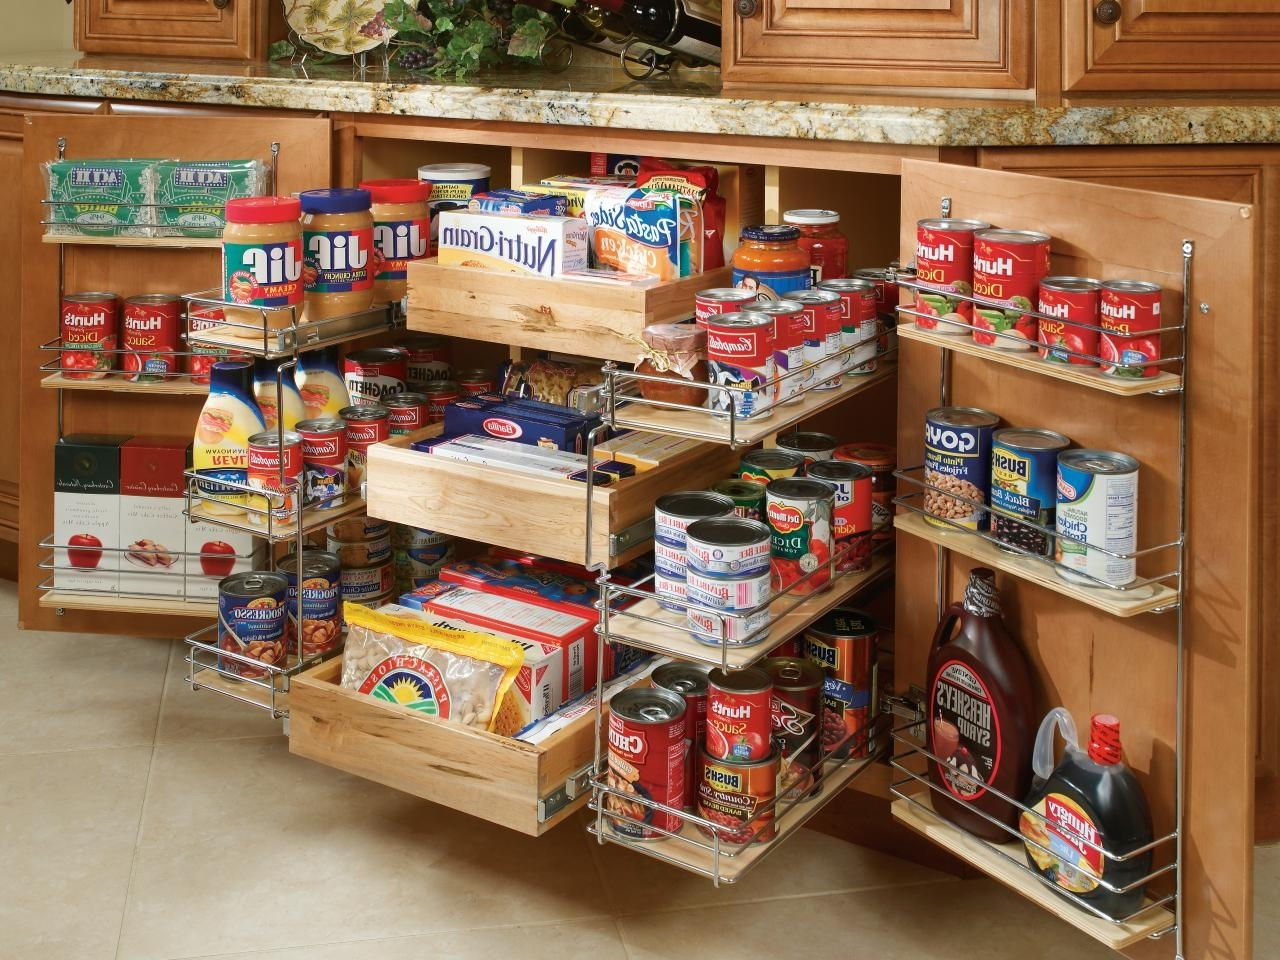 Pantry Cabinets And Cupboards: Organization Ideas And Options | Hgtv With Regard To Pantry Cabinets To Utilize Your Kitchen (View 7 of 17)